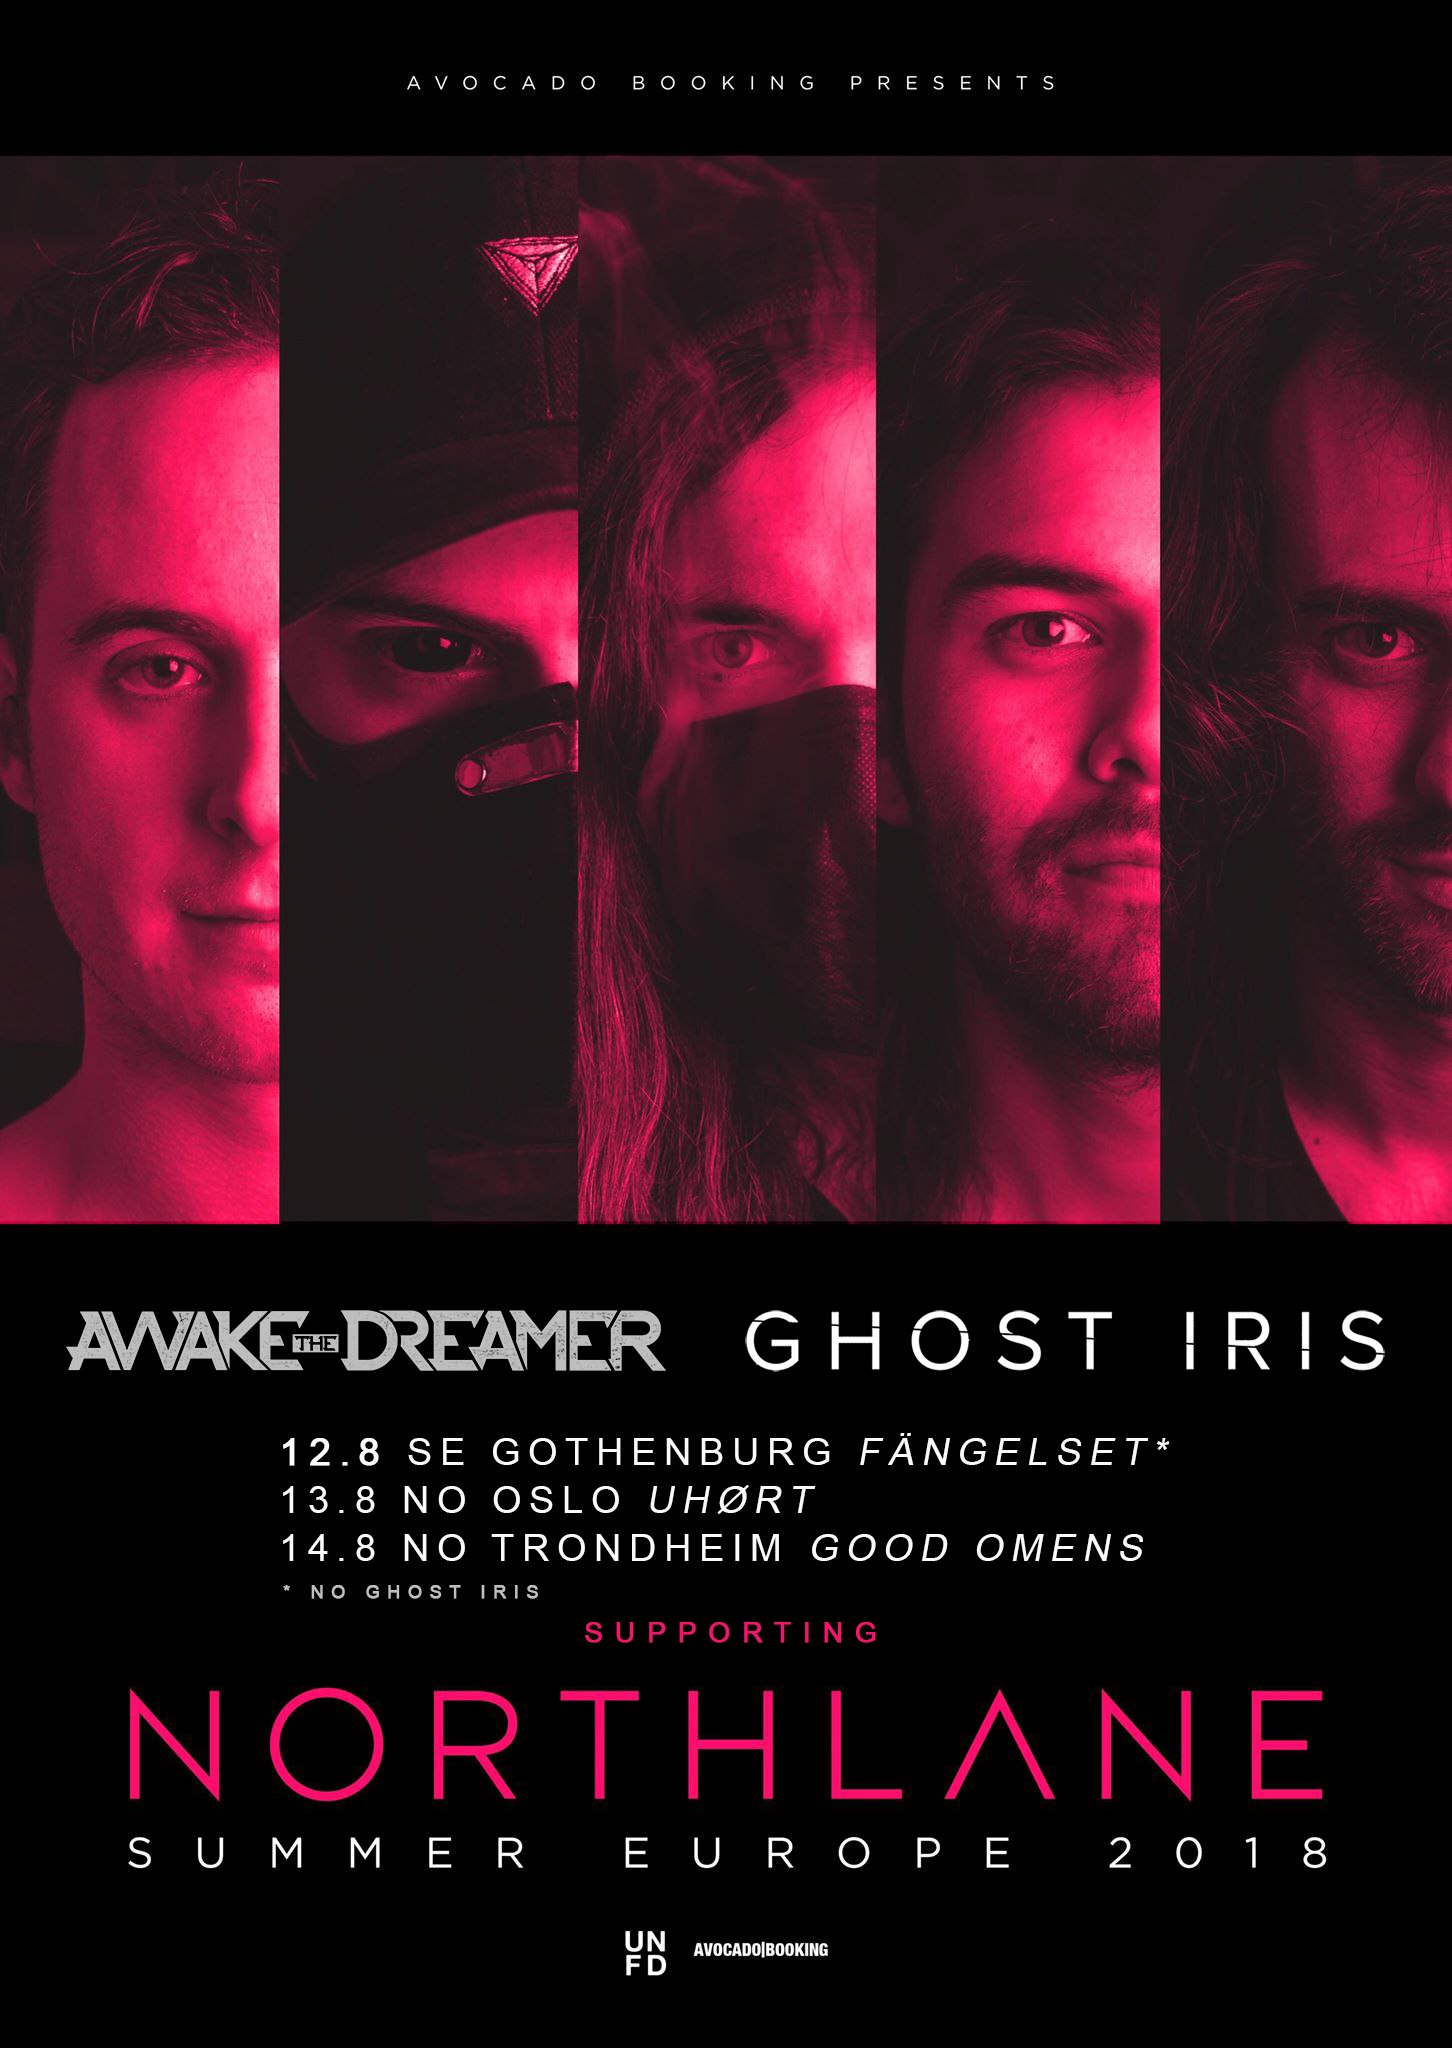 northlane_scandinavia_aug18png